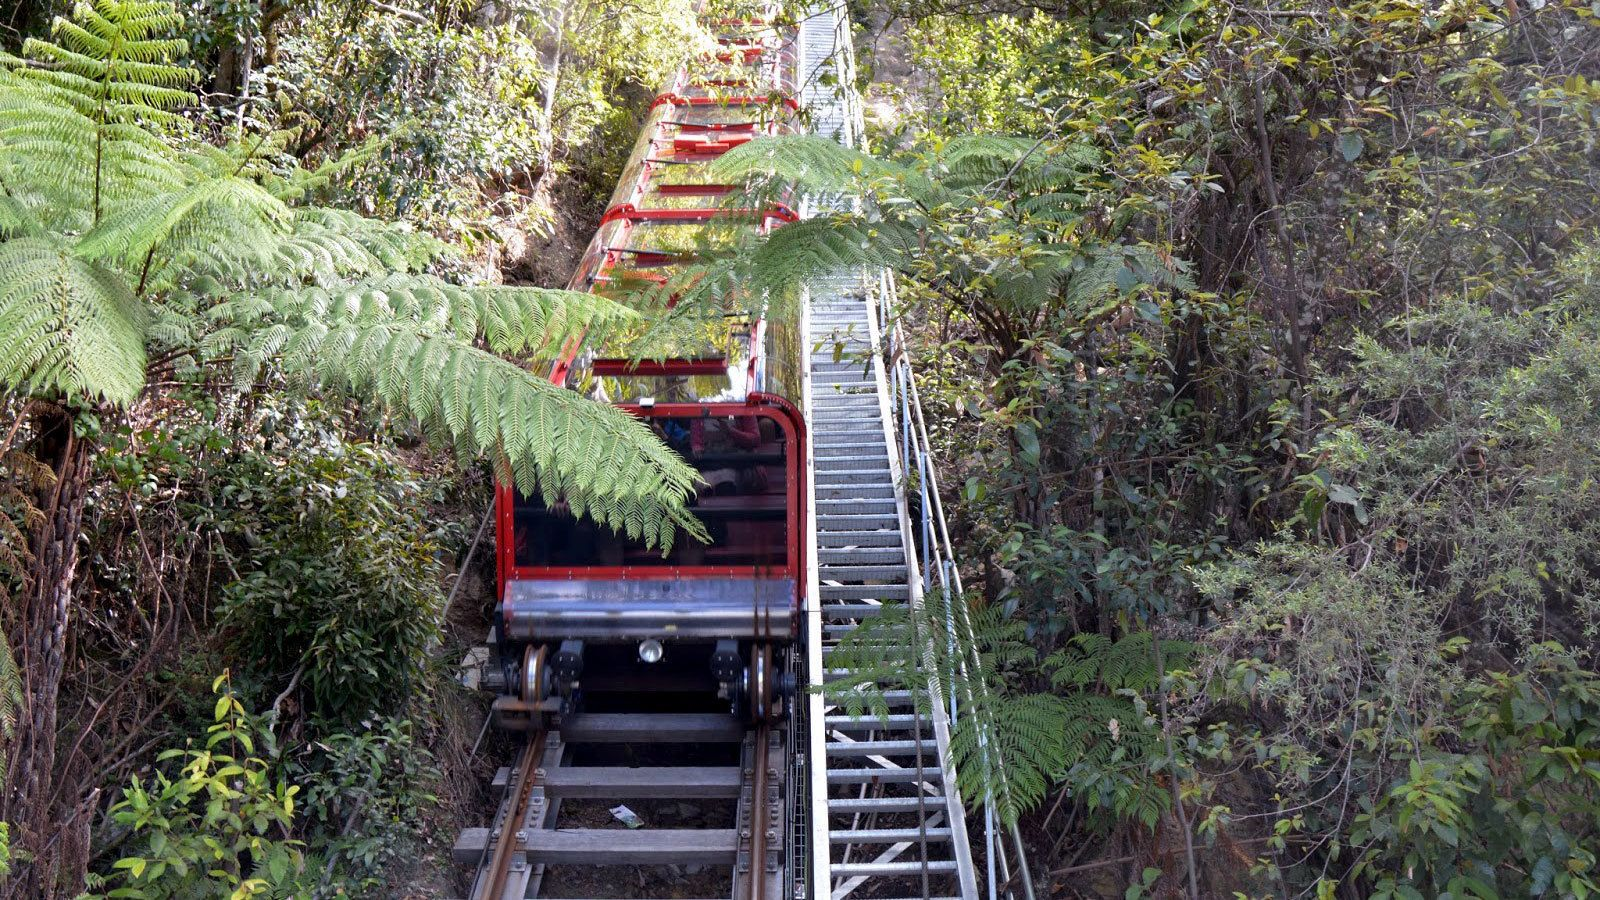 The Scenic Railway in operation giving visitors and amazing view of the Blue Mountains in Australia